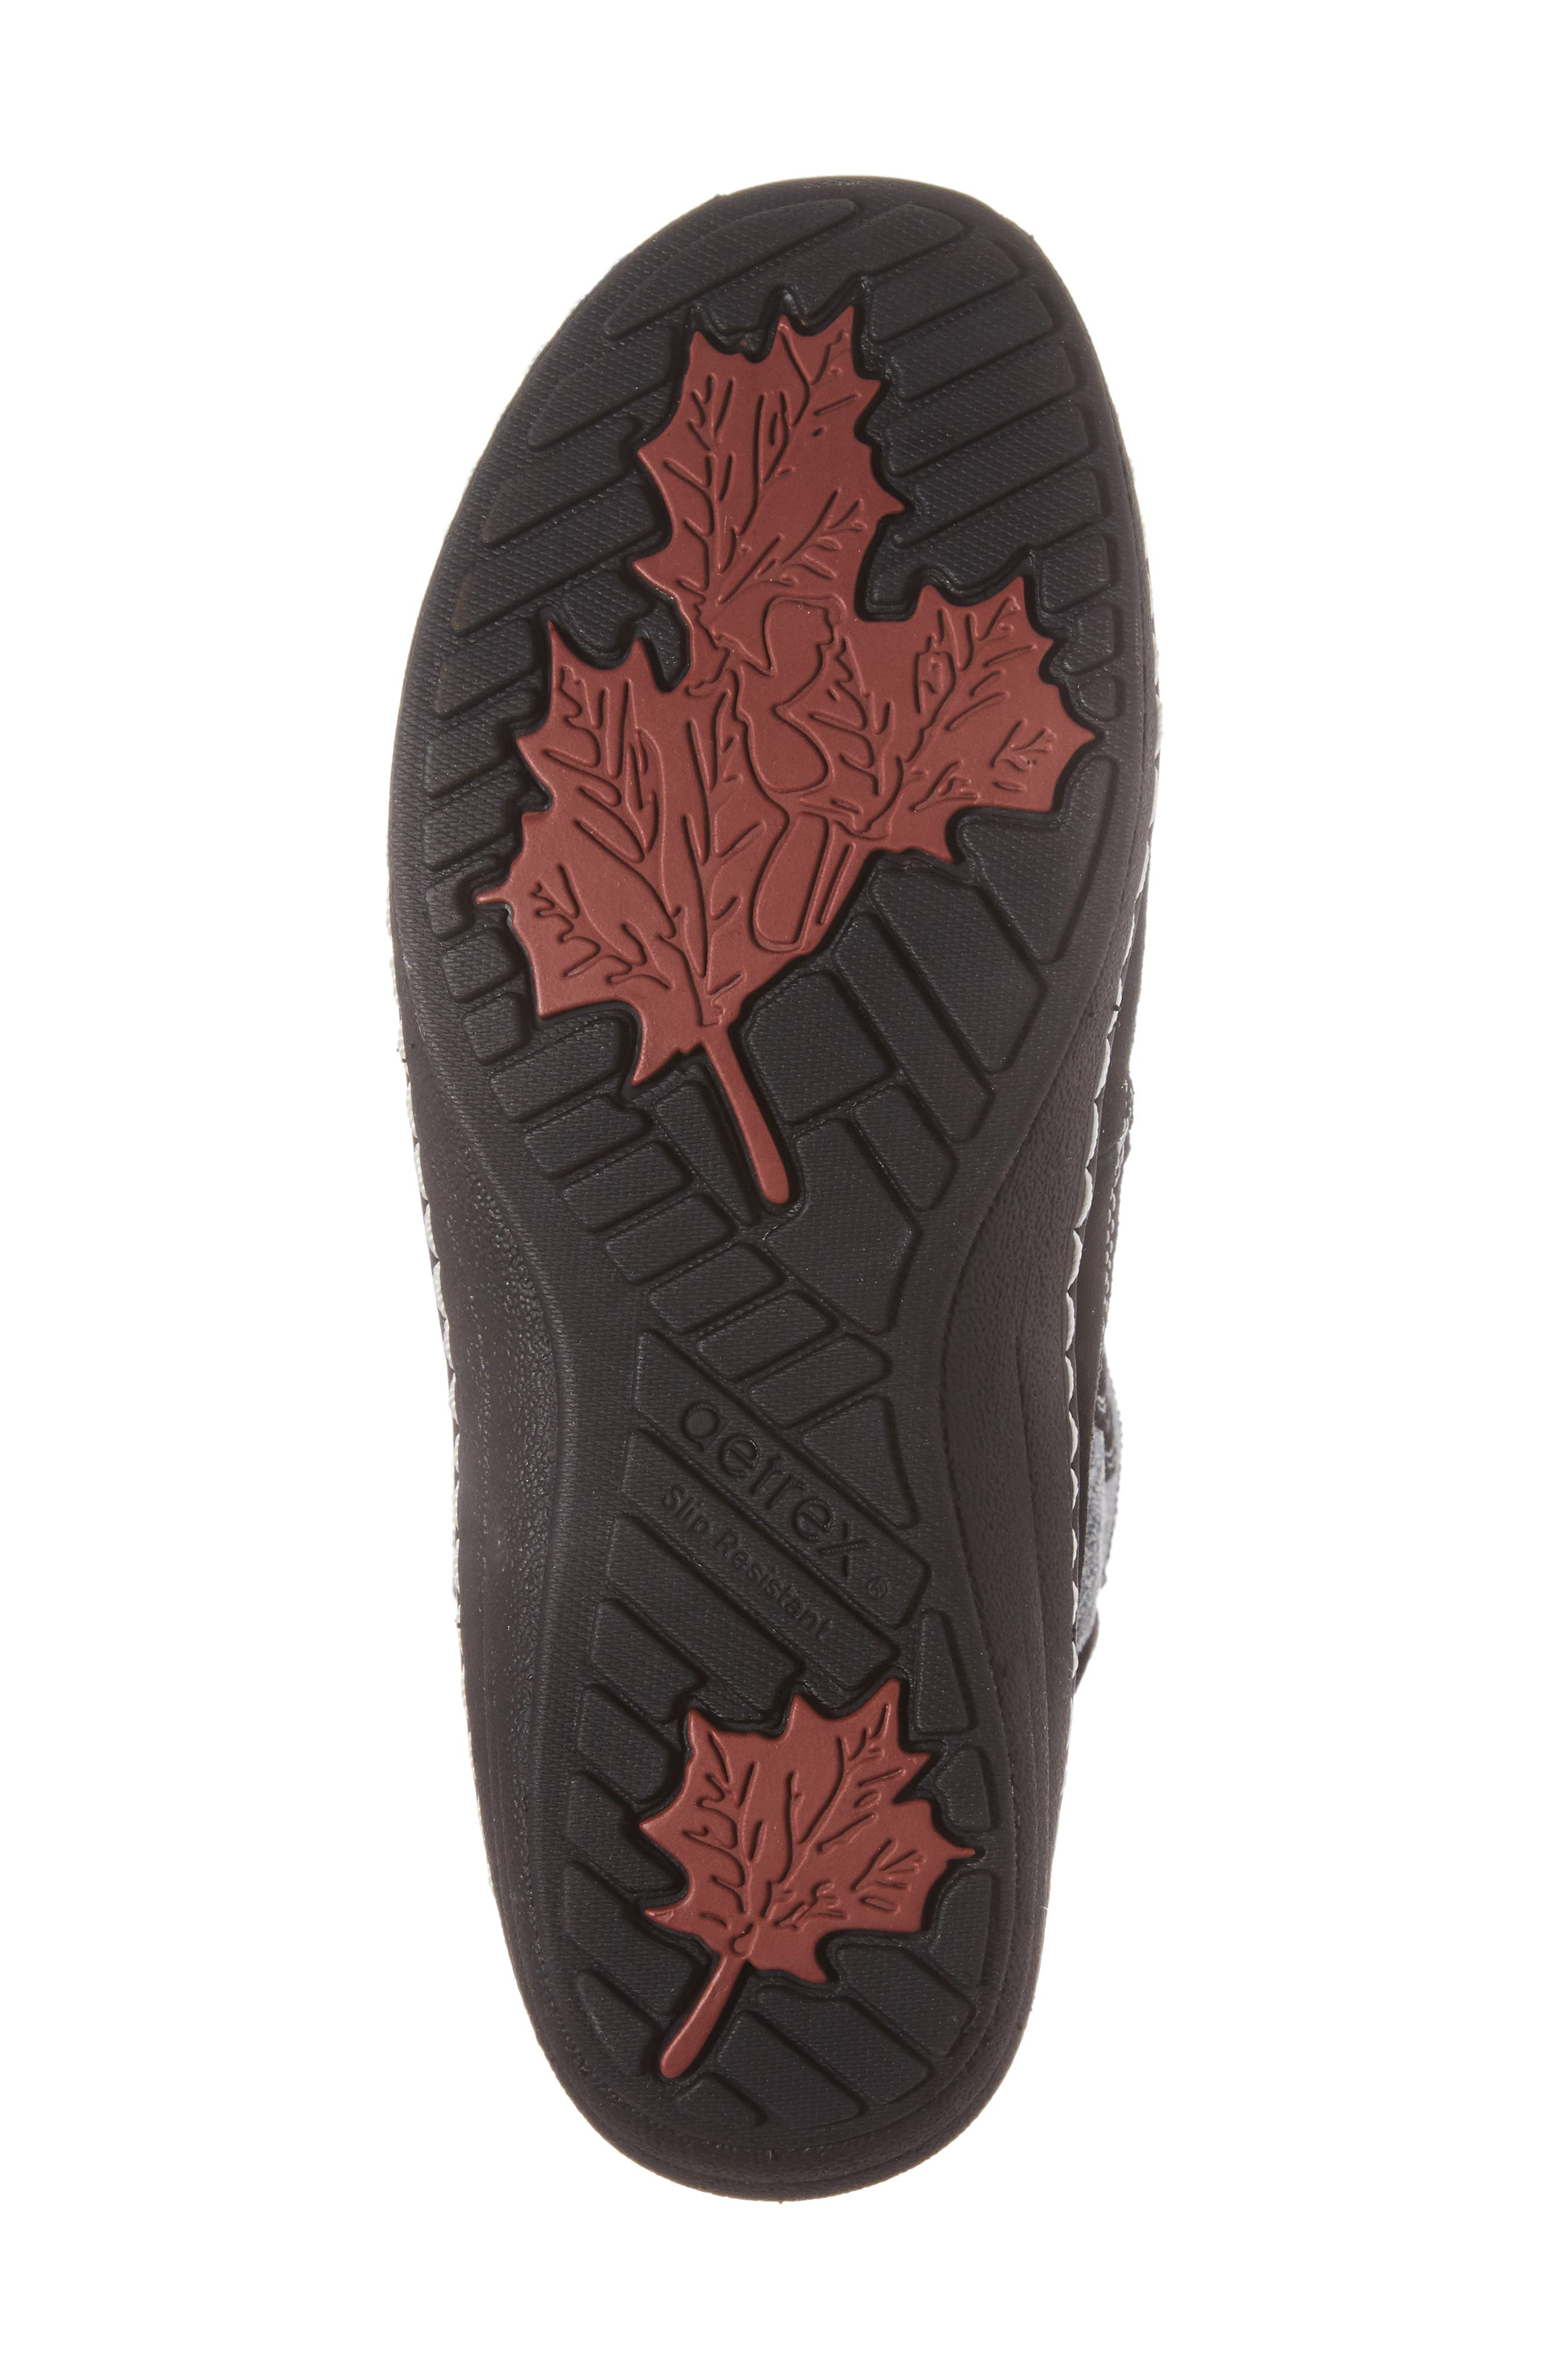 Berries Water Resistant Boot,                             Alternate thumbnail 6, color,                             MULTIBERRY SUEDE